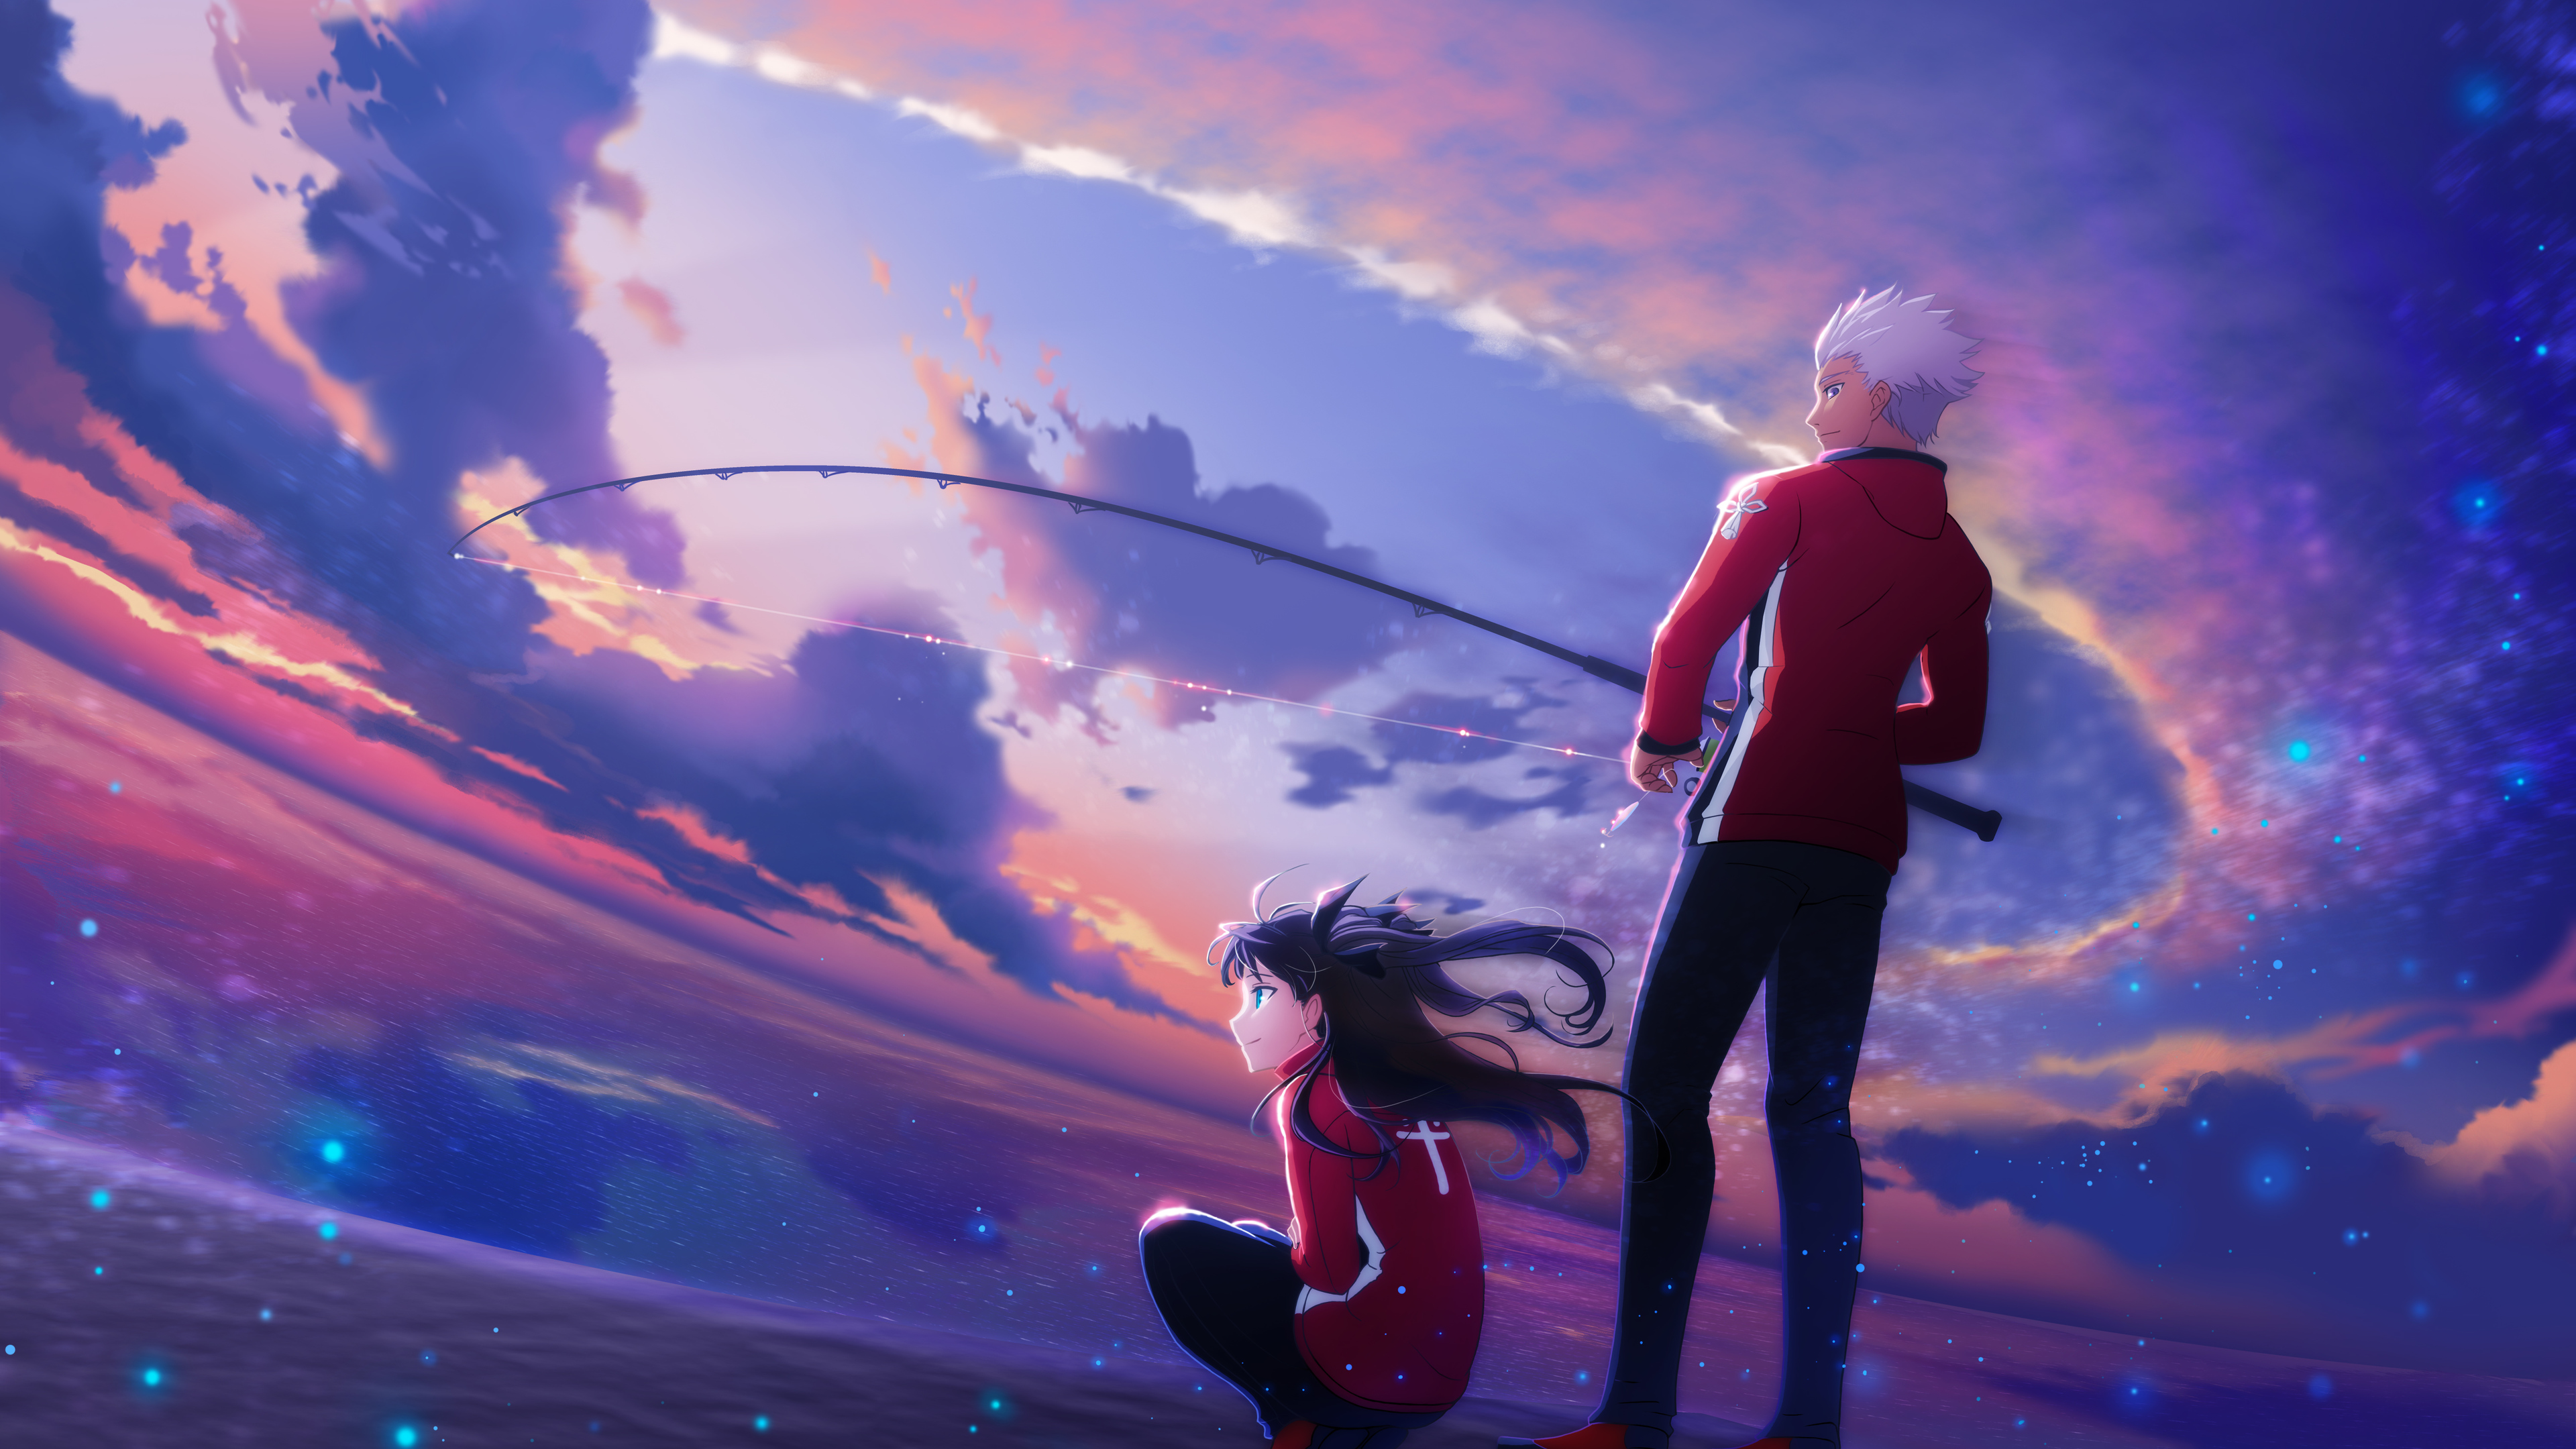 Fate Series Archer 4k pixiv wallpapers, hd-wallpapers ...